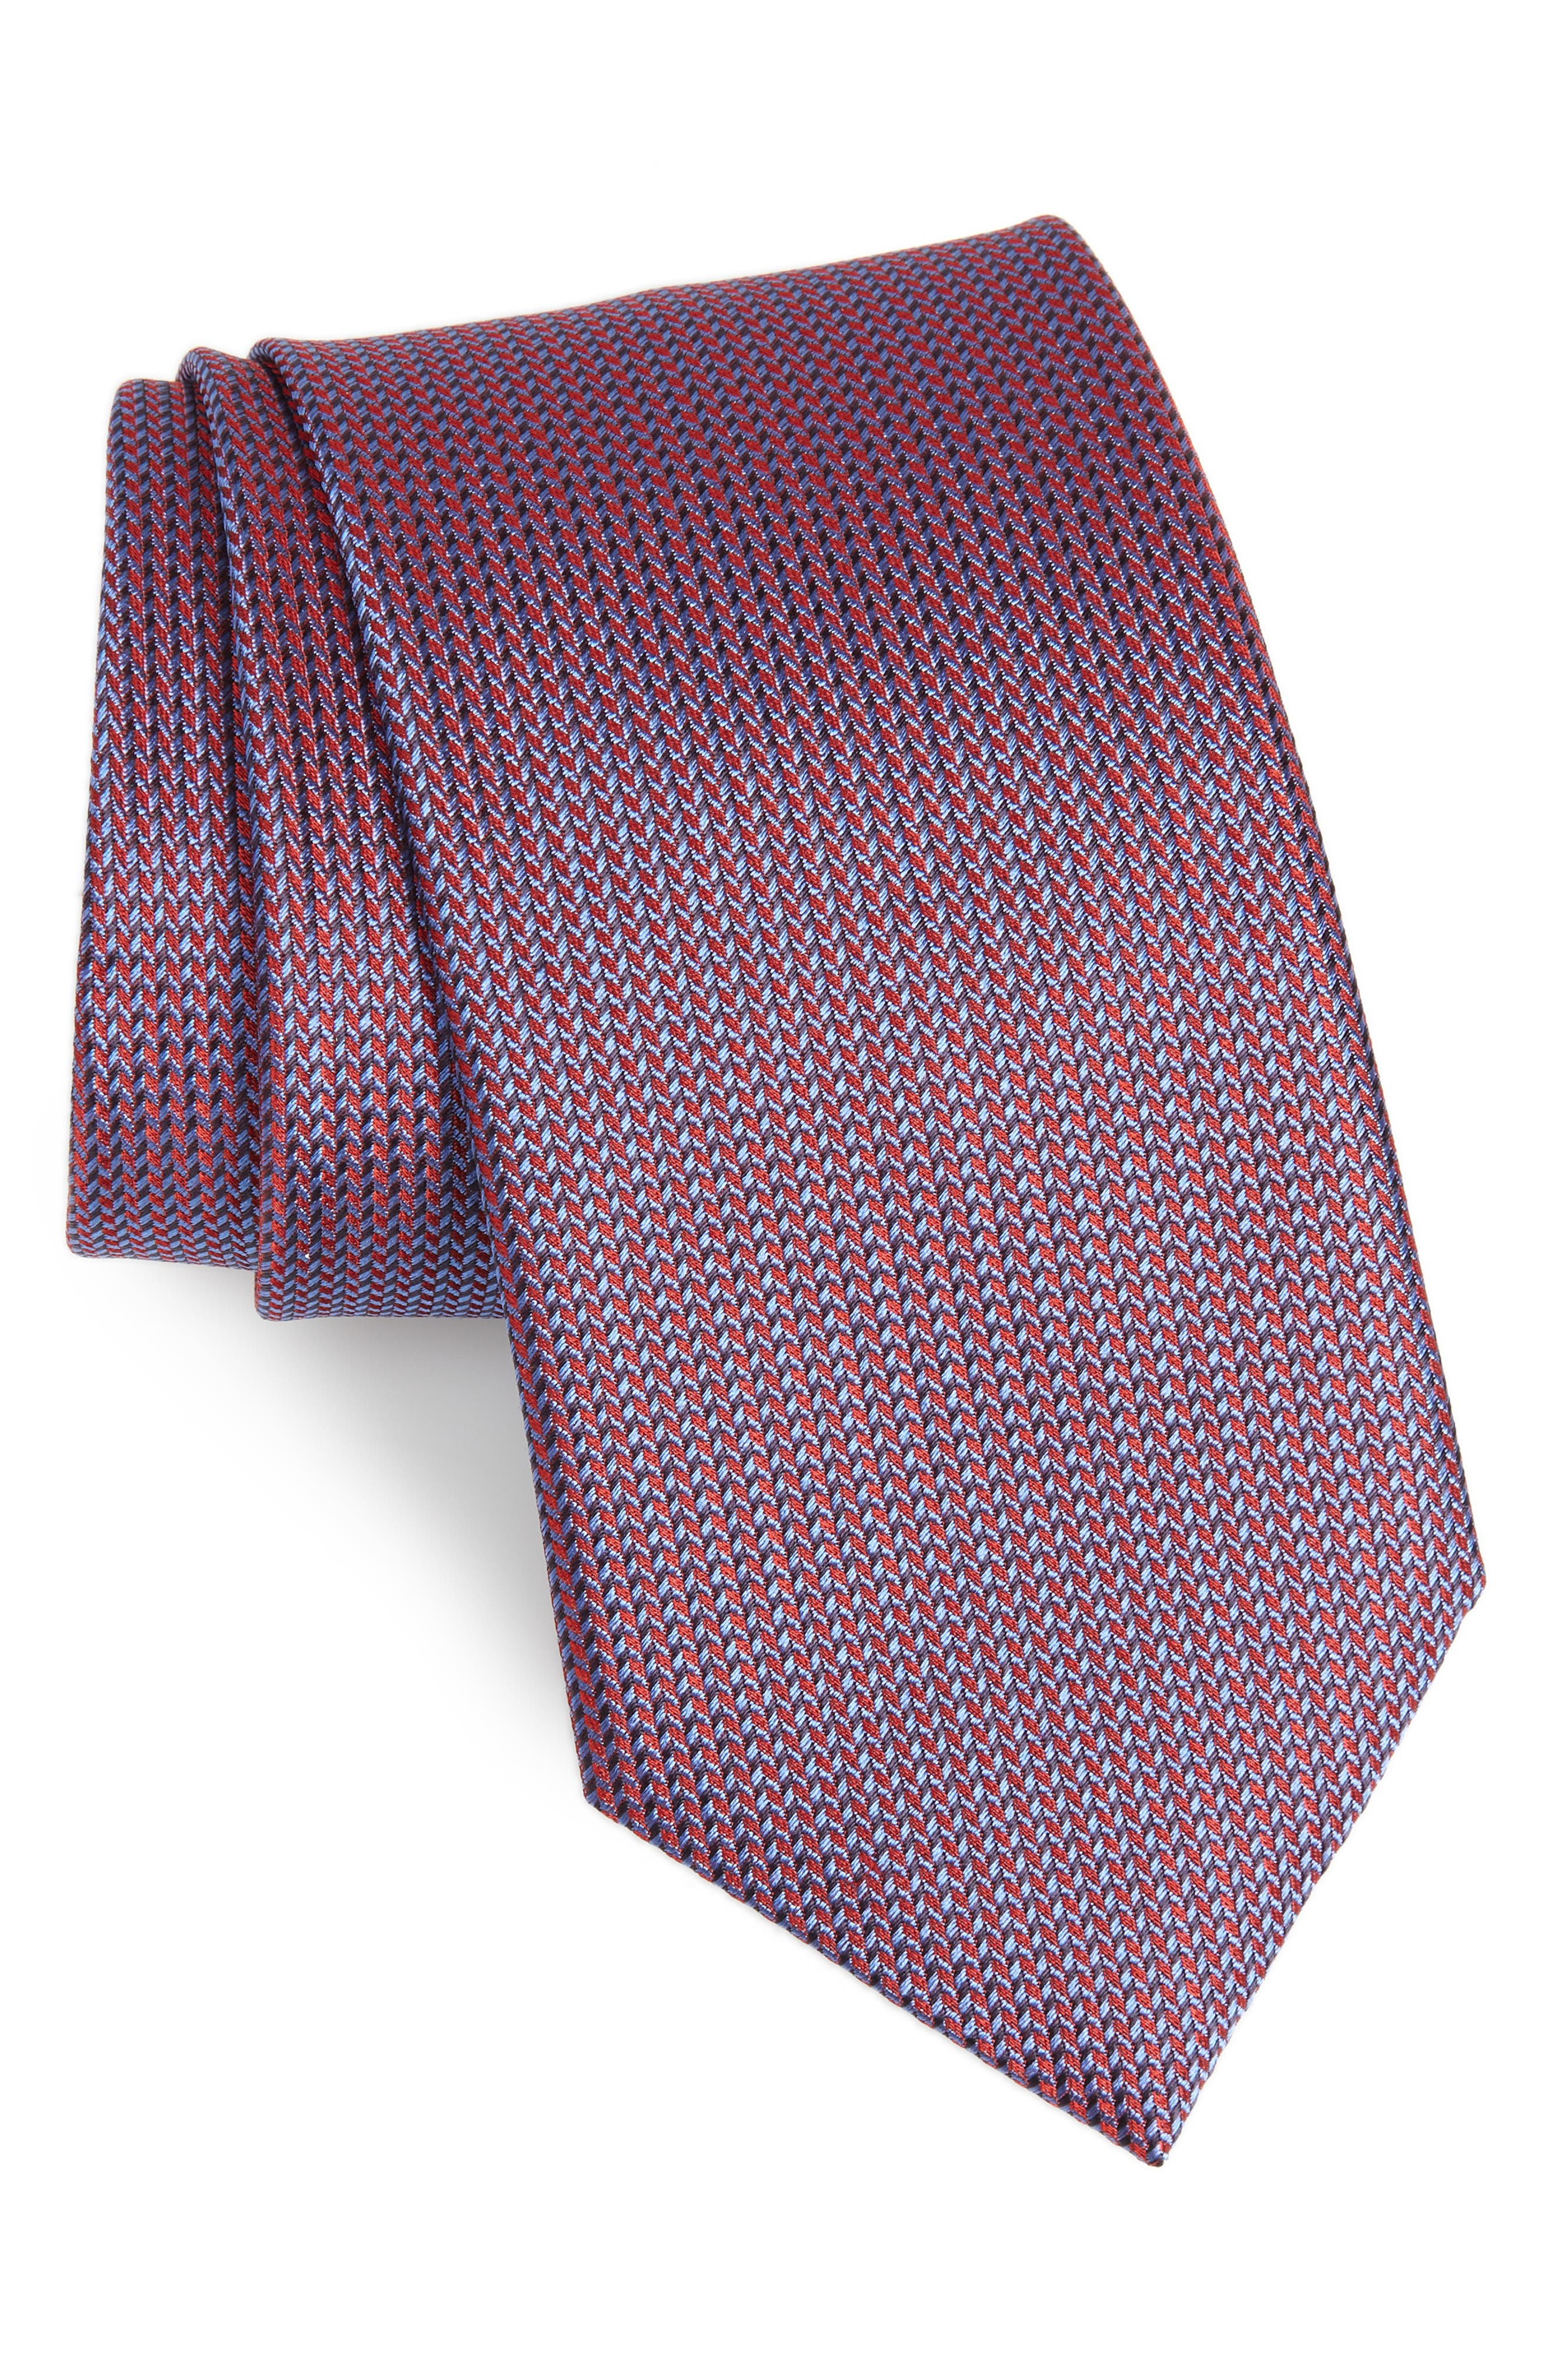 Solid Silk Tie,                             Main thumbnail 1, color,                             Red